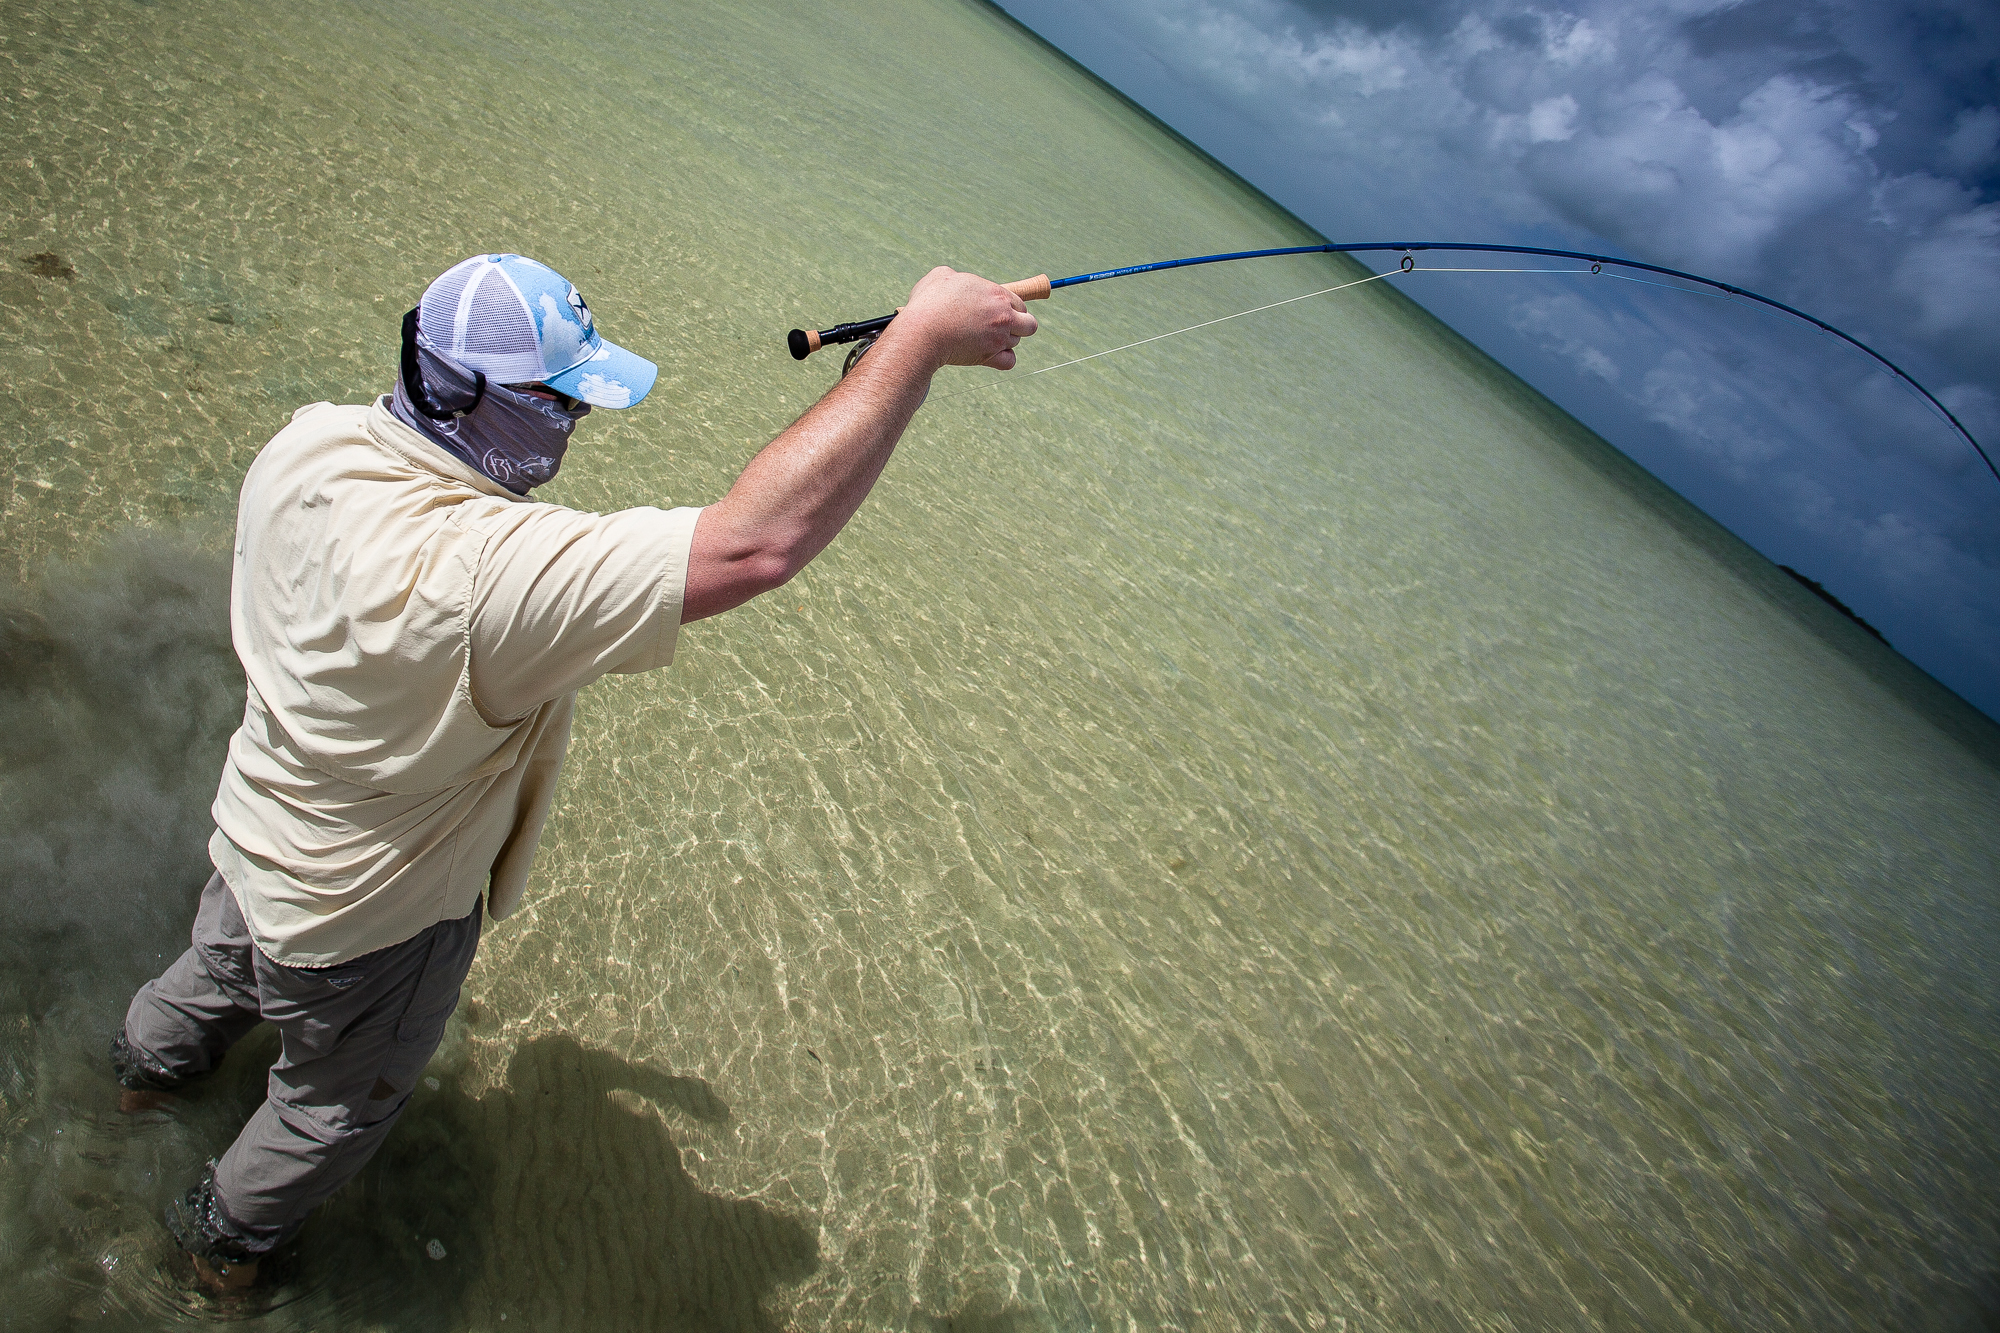 (1/2) As quickly as the storm approaches, it passes, and sun re-appears on the northern horizon. The many bonefish that come to hand continue to surprise in terms of their size. While Ascension Bay's bonefish are known to be plentiful in number, they aren't known for their size. Reports from recent years suggest large specimens are becoming more common, and the evidence matches (photo: Chad Shmukler).